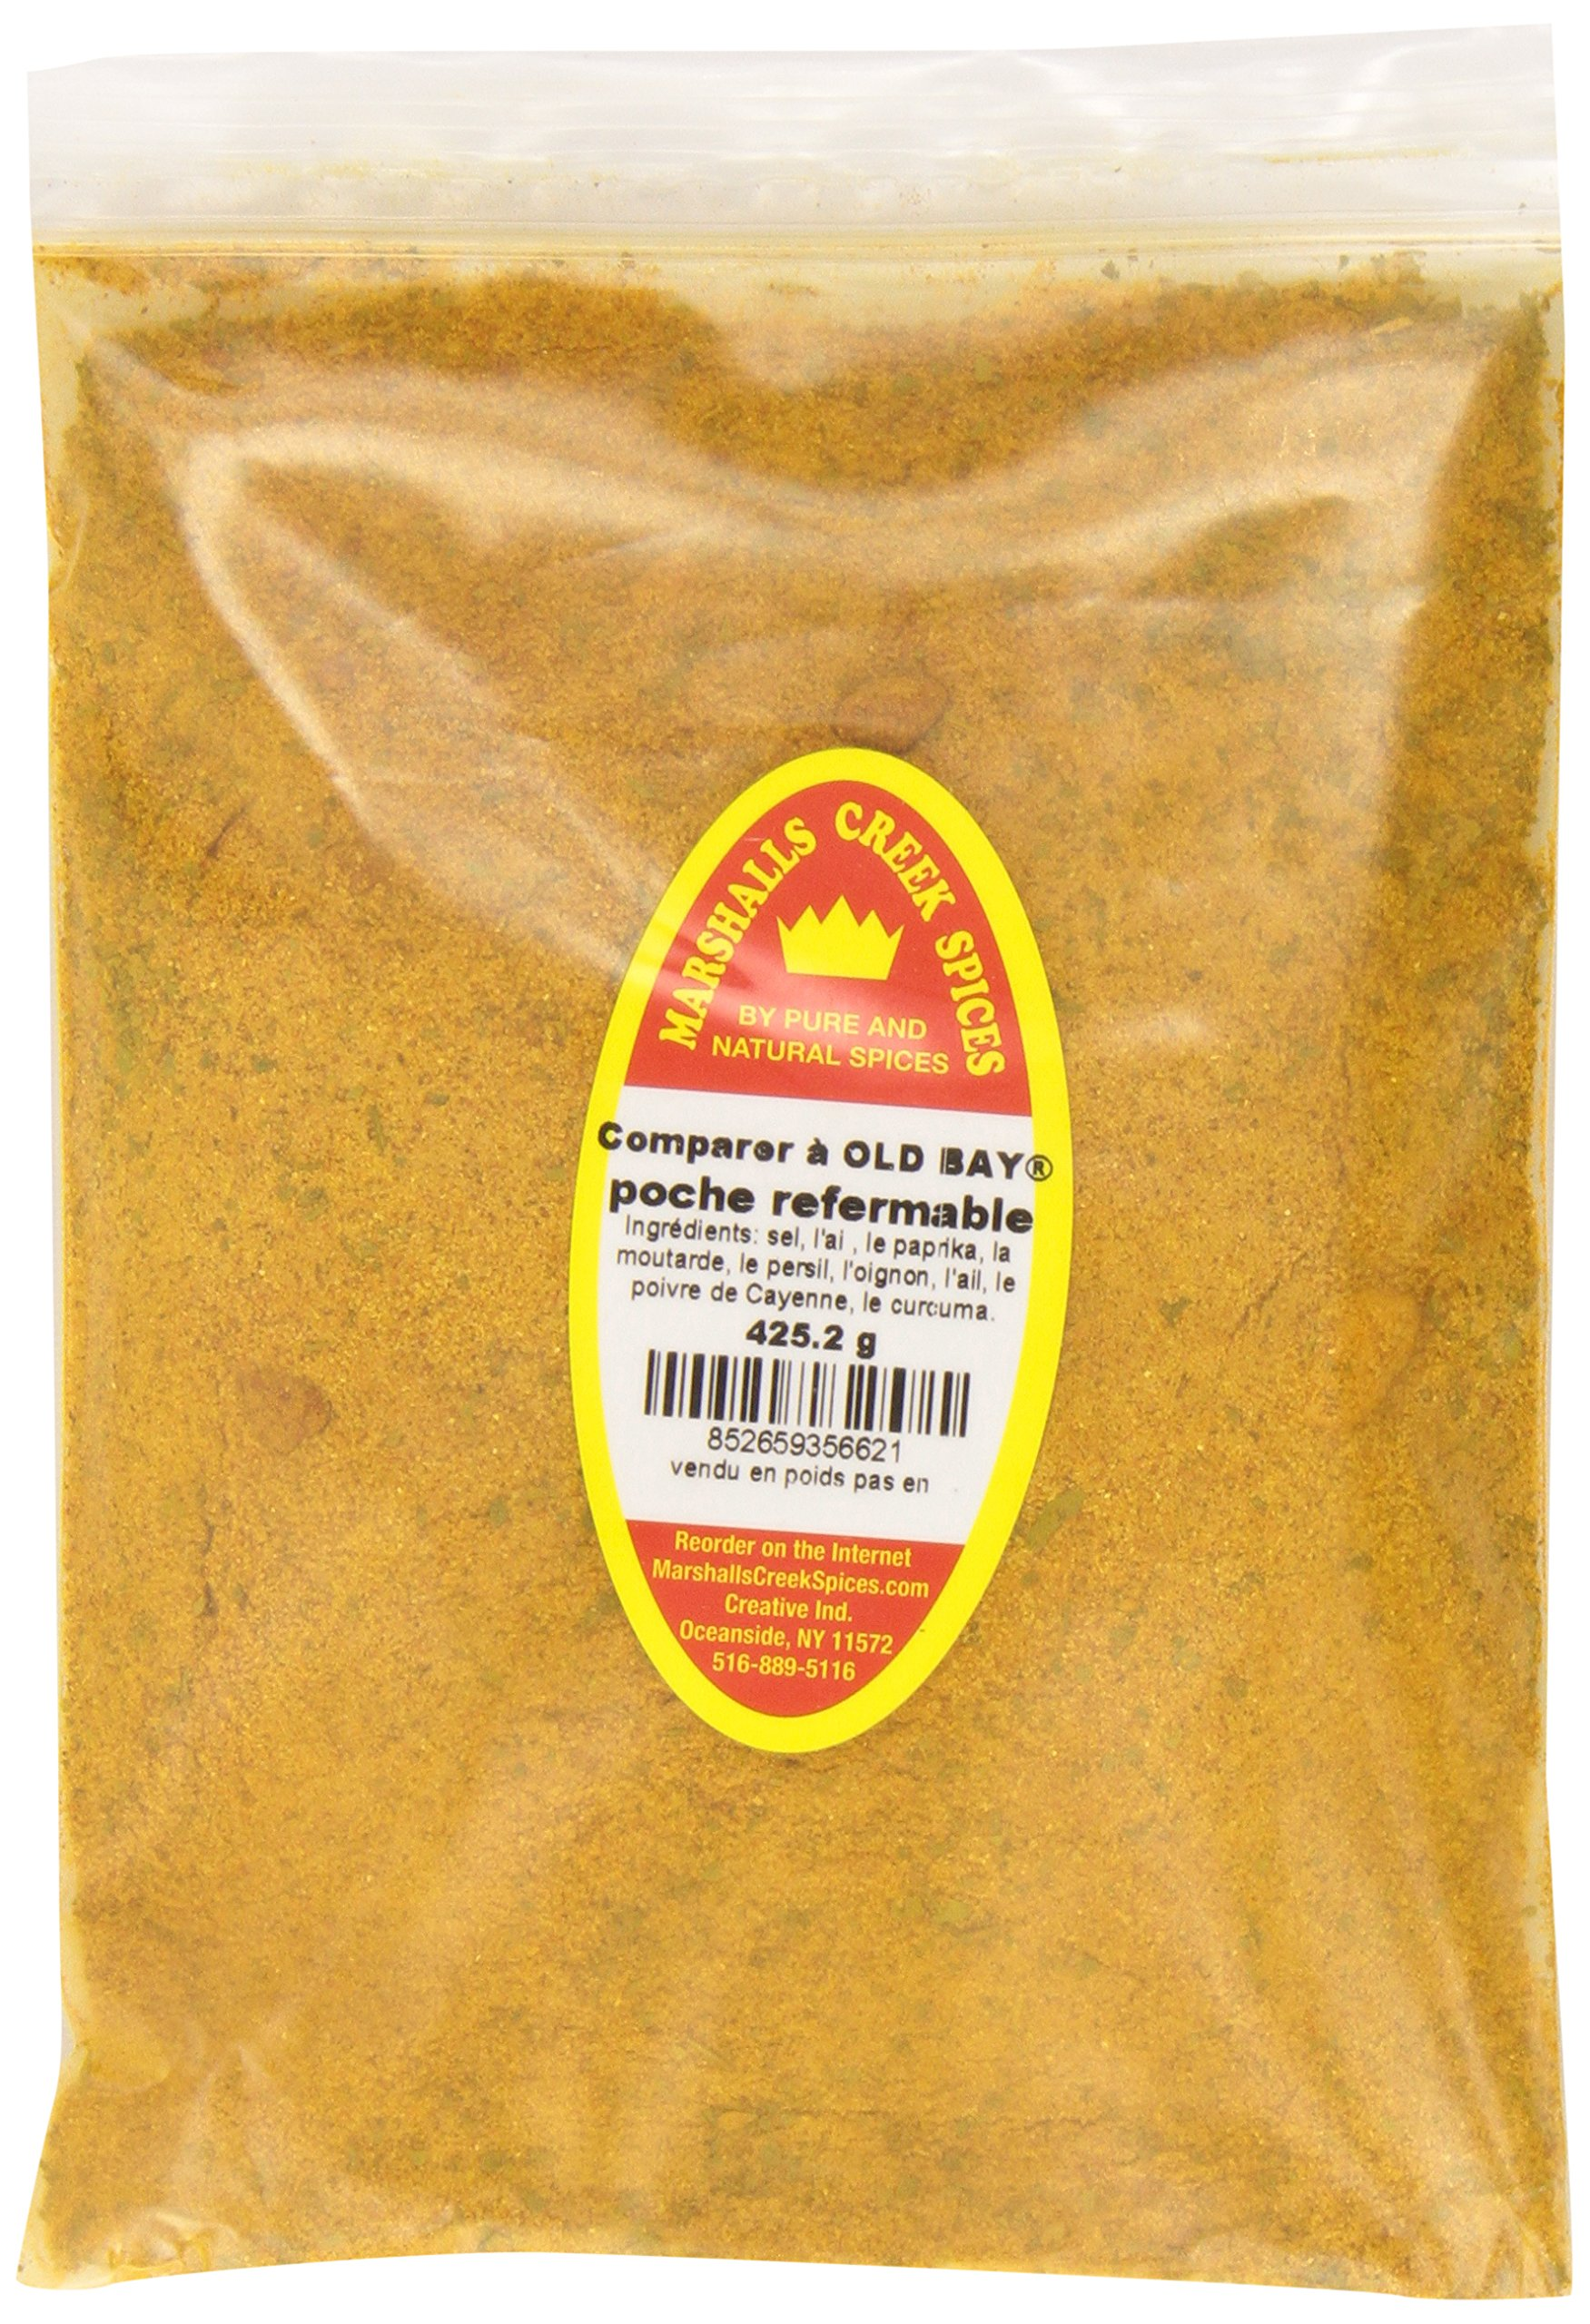 Marshalls Creek Spices Old Bay Seasoning Refill, 18 Ounce (Pack of 12) by Marshall's Creek Spices (Image #2)